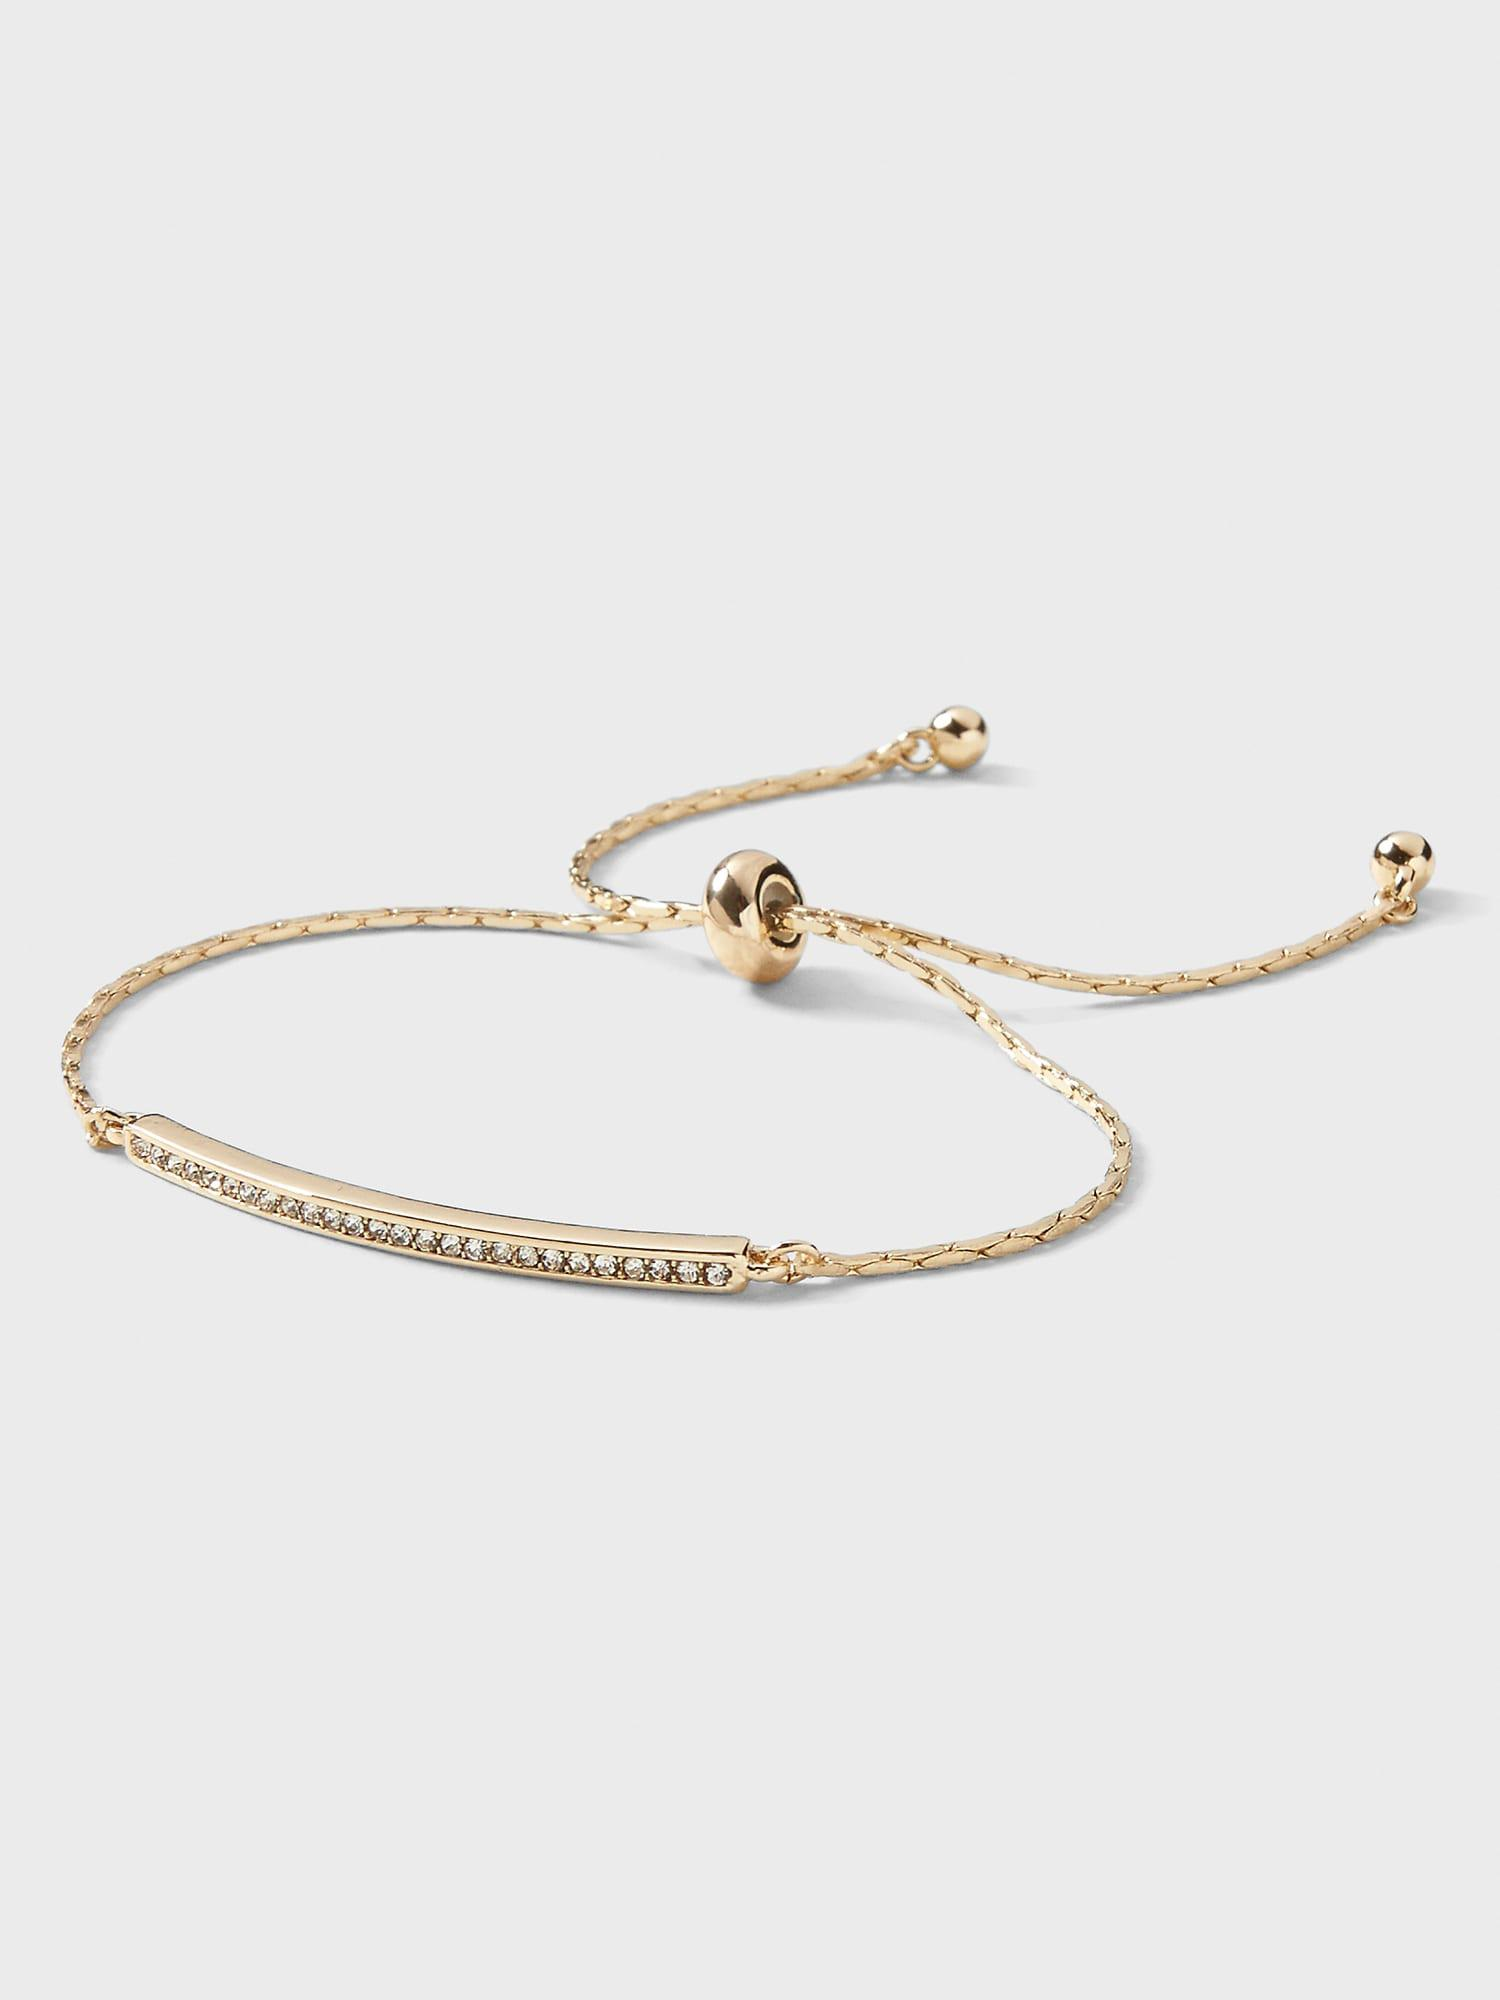 Delicate Pave Bar Pull Through Bracelet